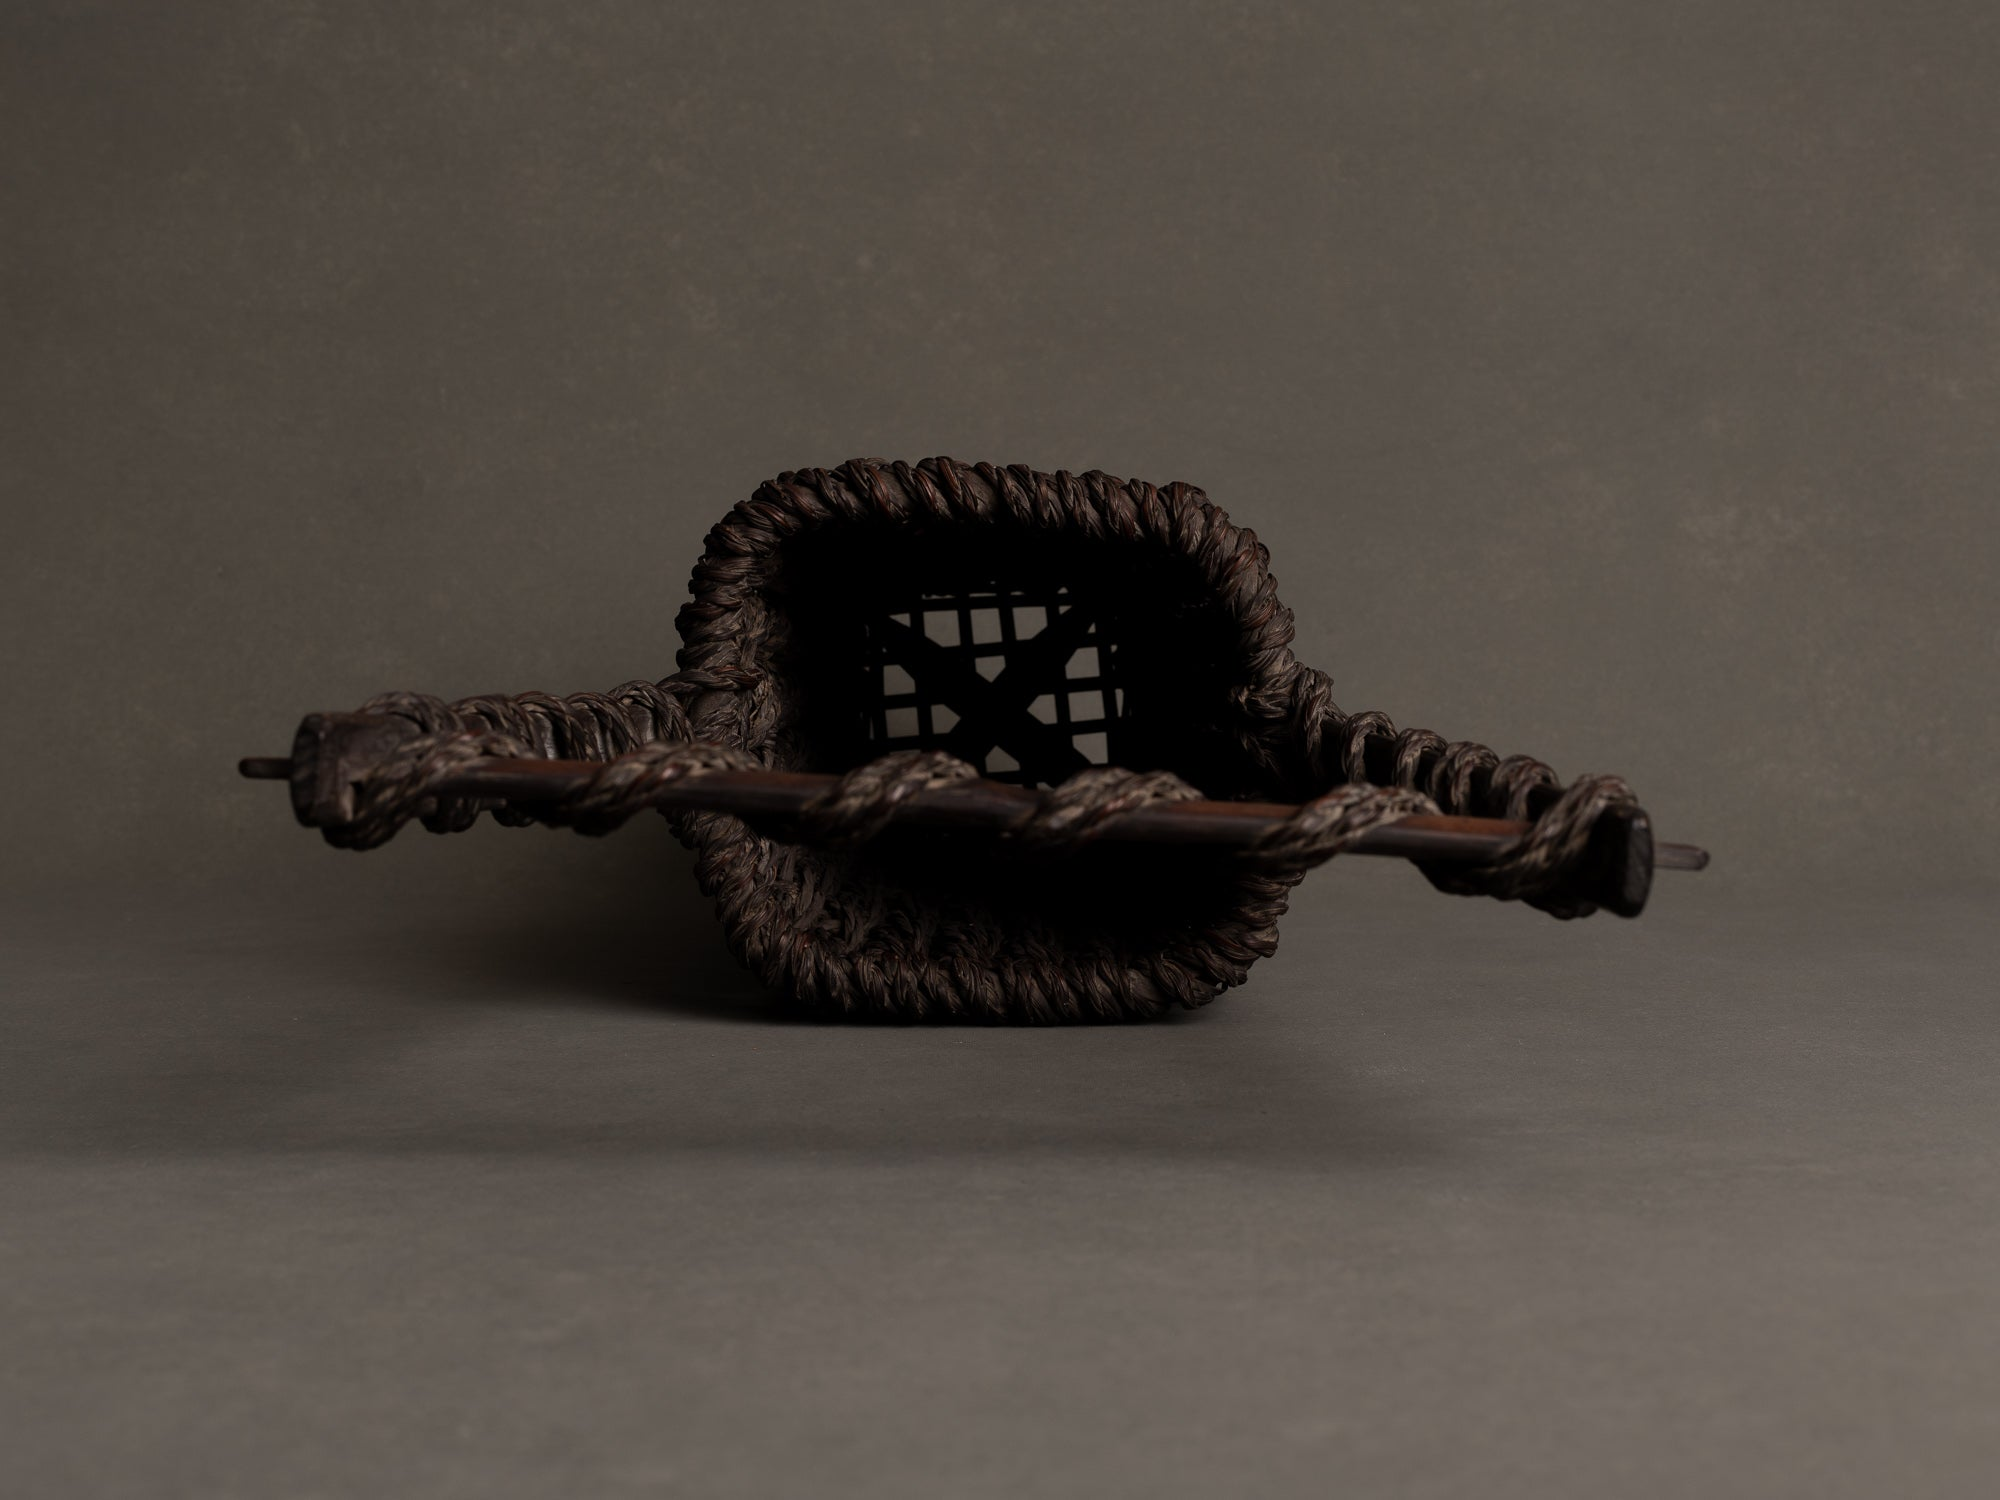 Hanakago, haut panier carquois tressage de bambou cordé pour l'ikebana, Japon (Fin ère Meiji / début ère Shōwa)..Hanakago, high woven bamboo basket  for ikebana, Japan (Meiji era / early Shōwa era)